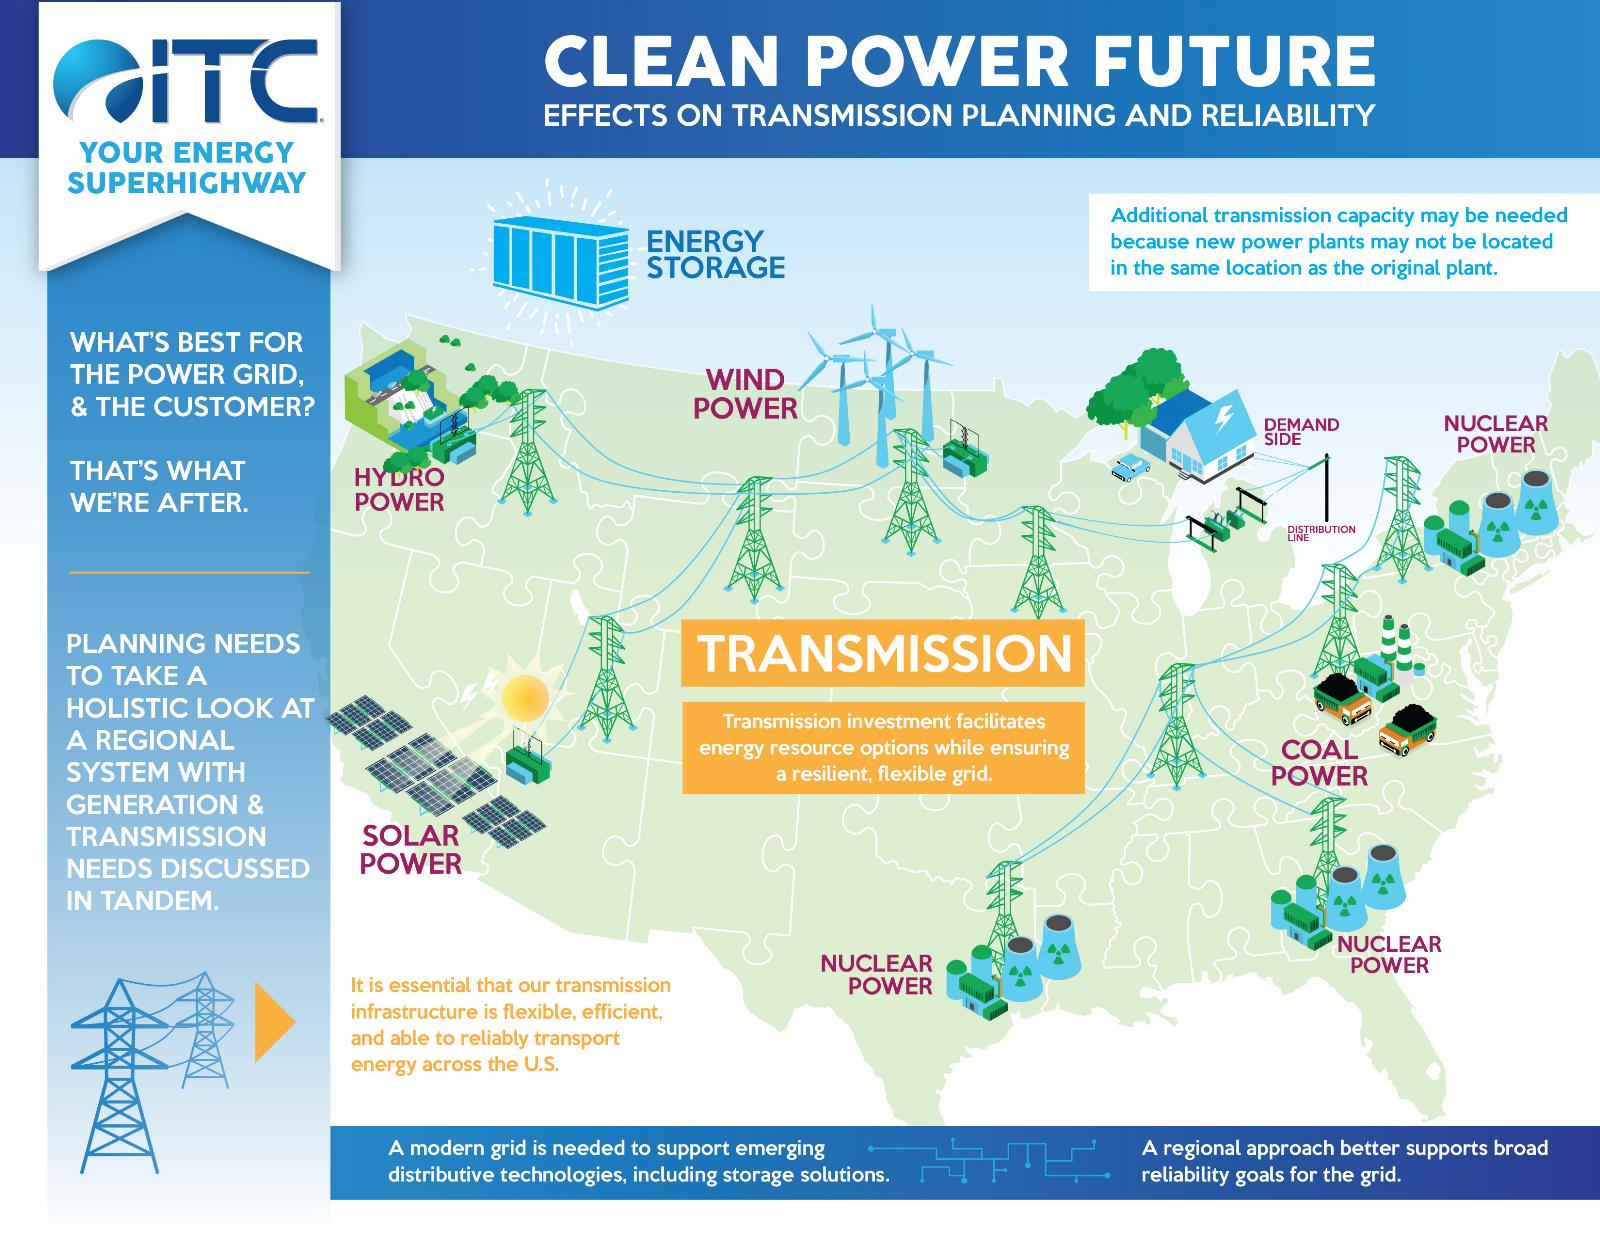 The importance of transmission for a clean power future.